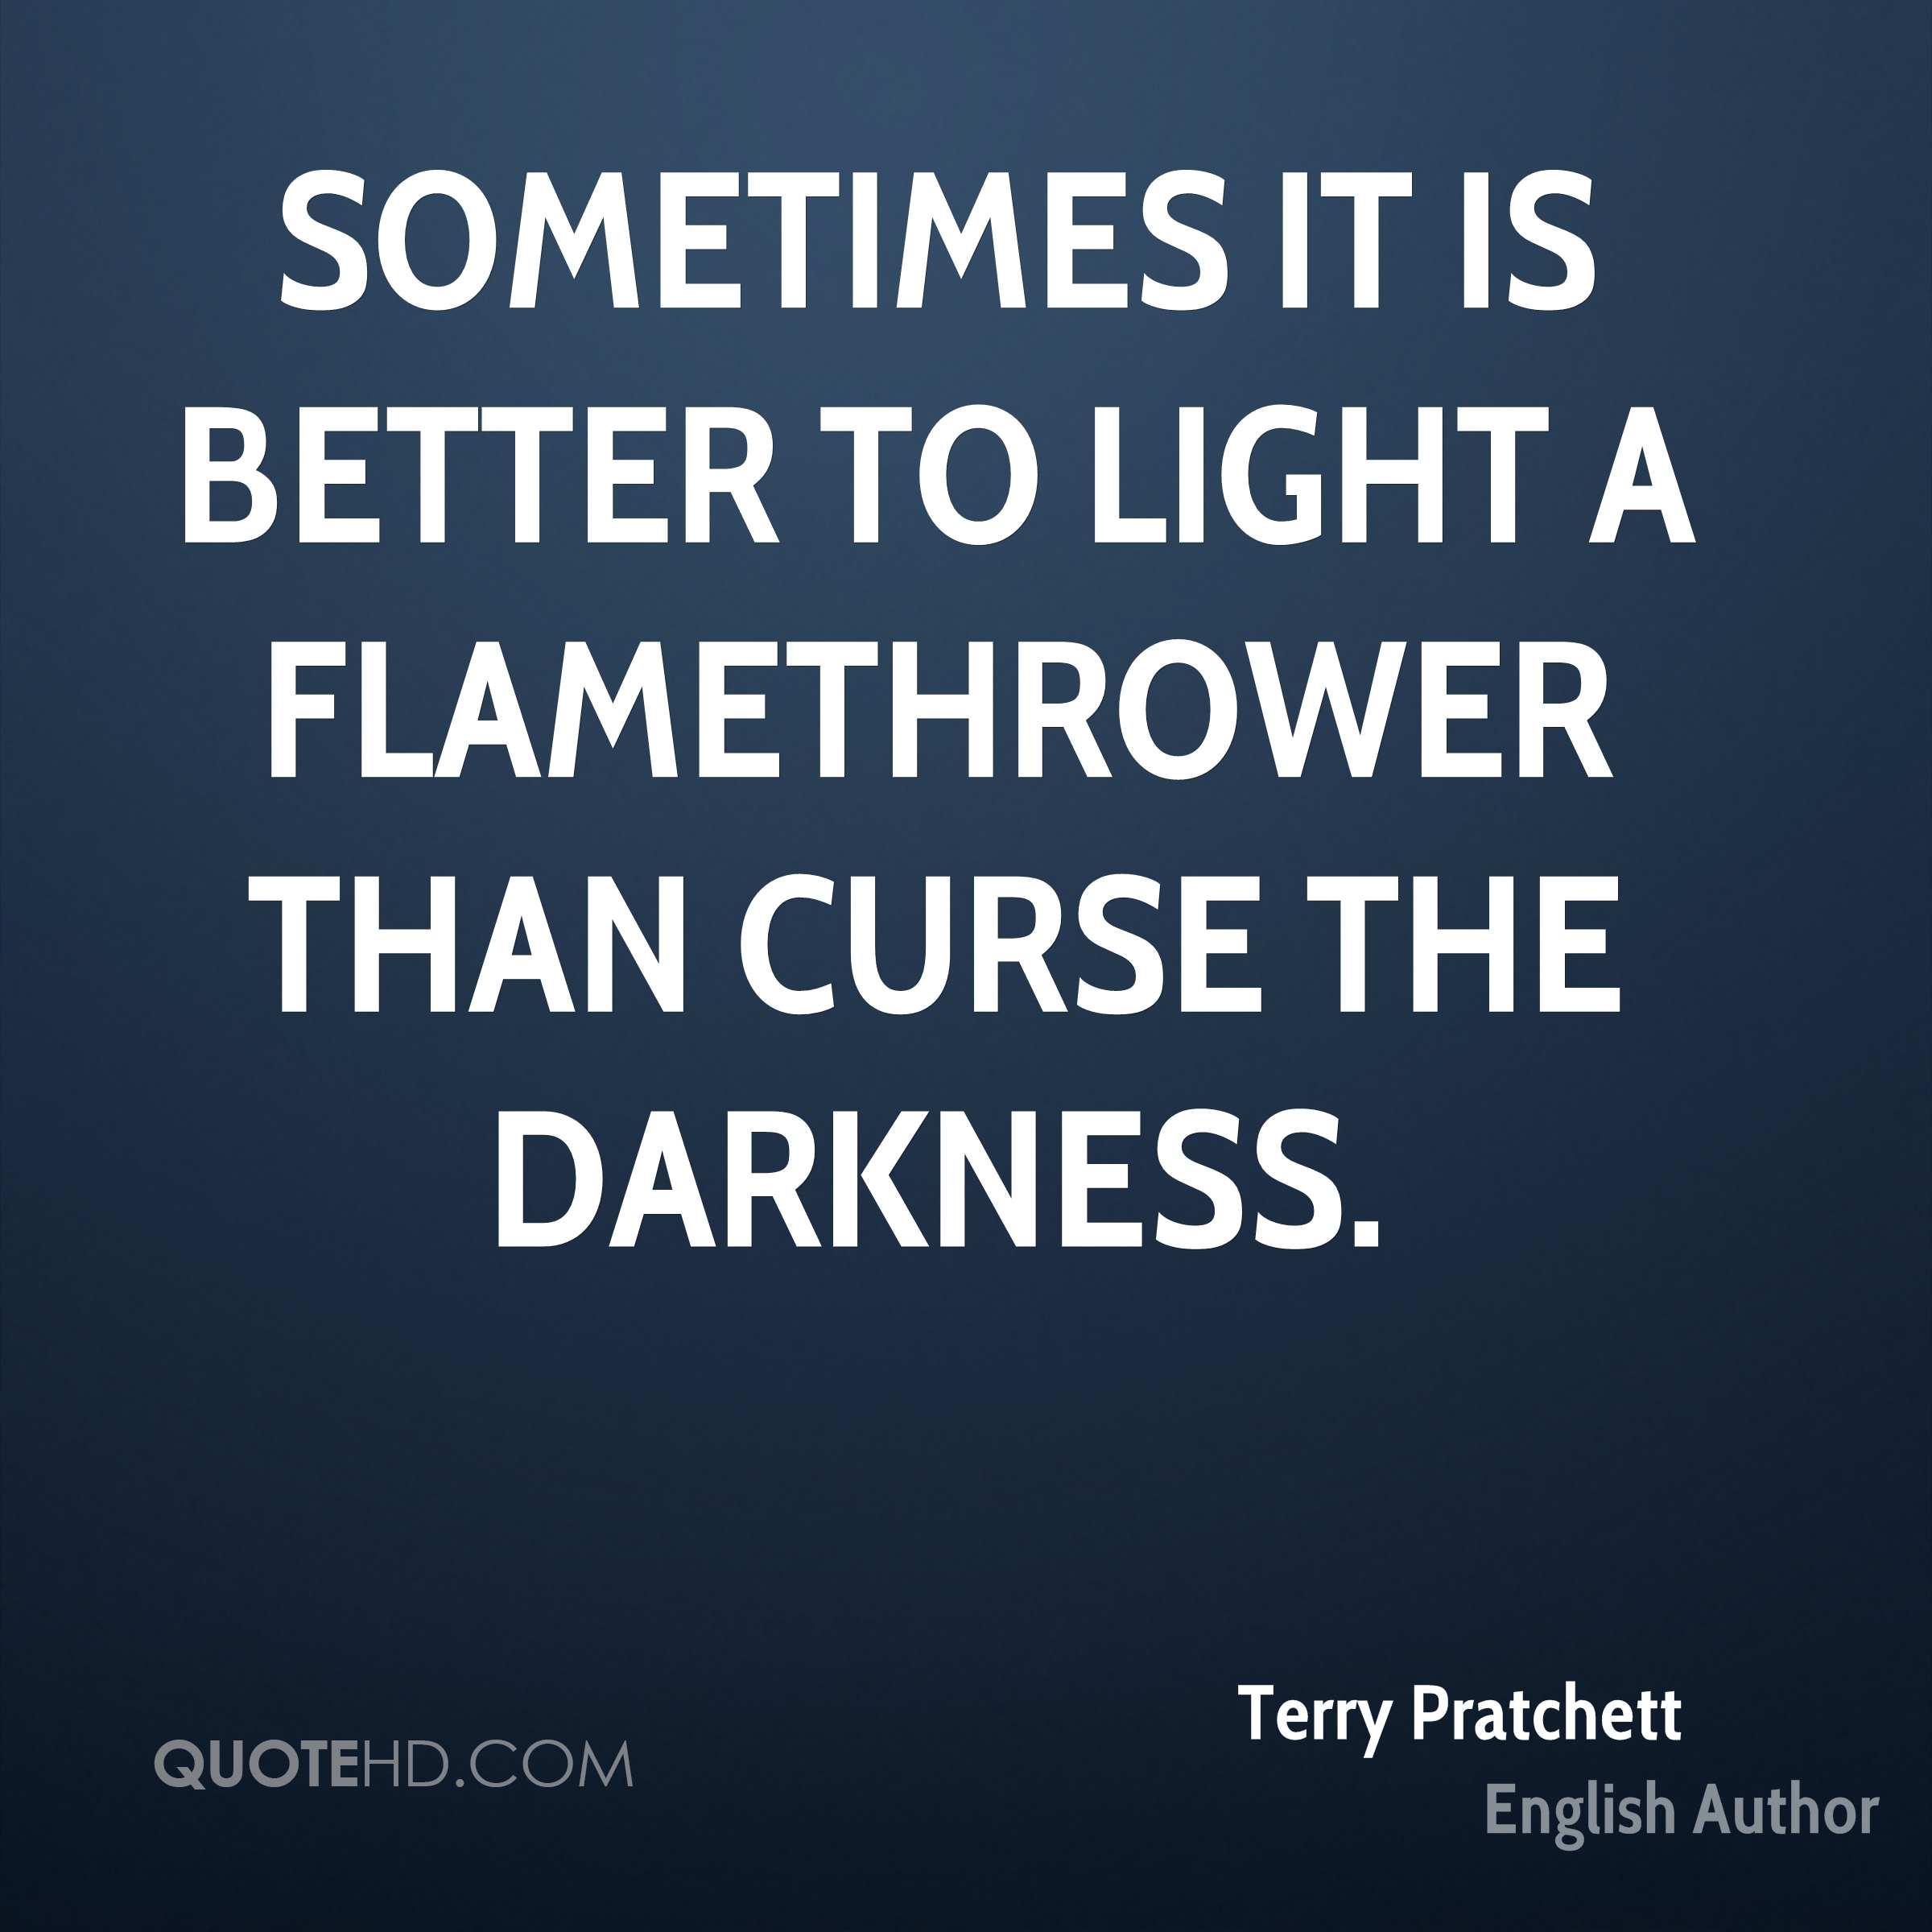 Sometimes it is better to light a flamethrower than curse the darkness.